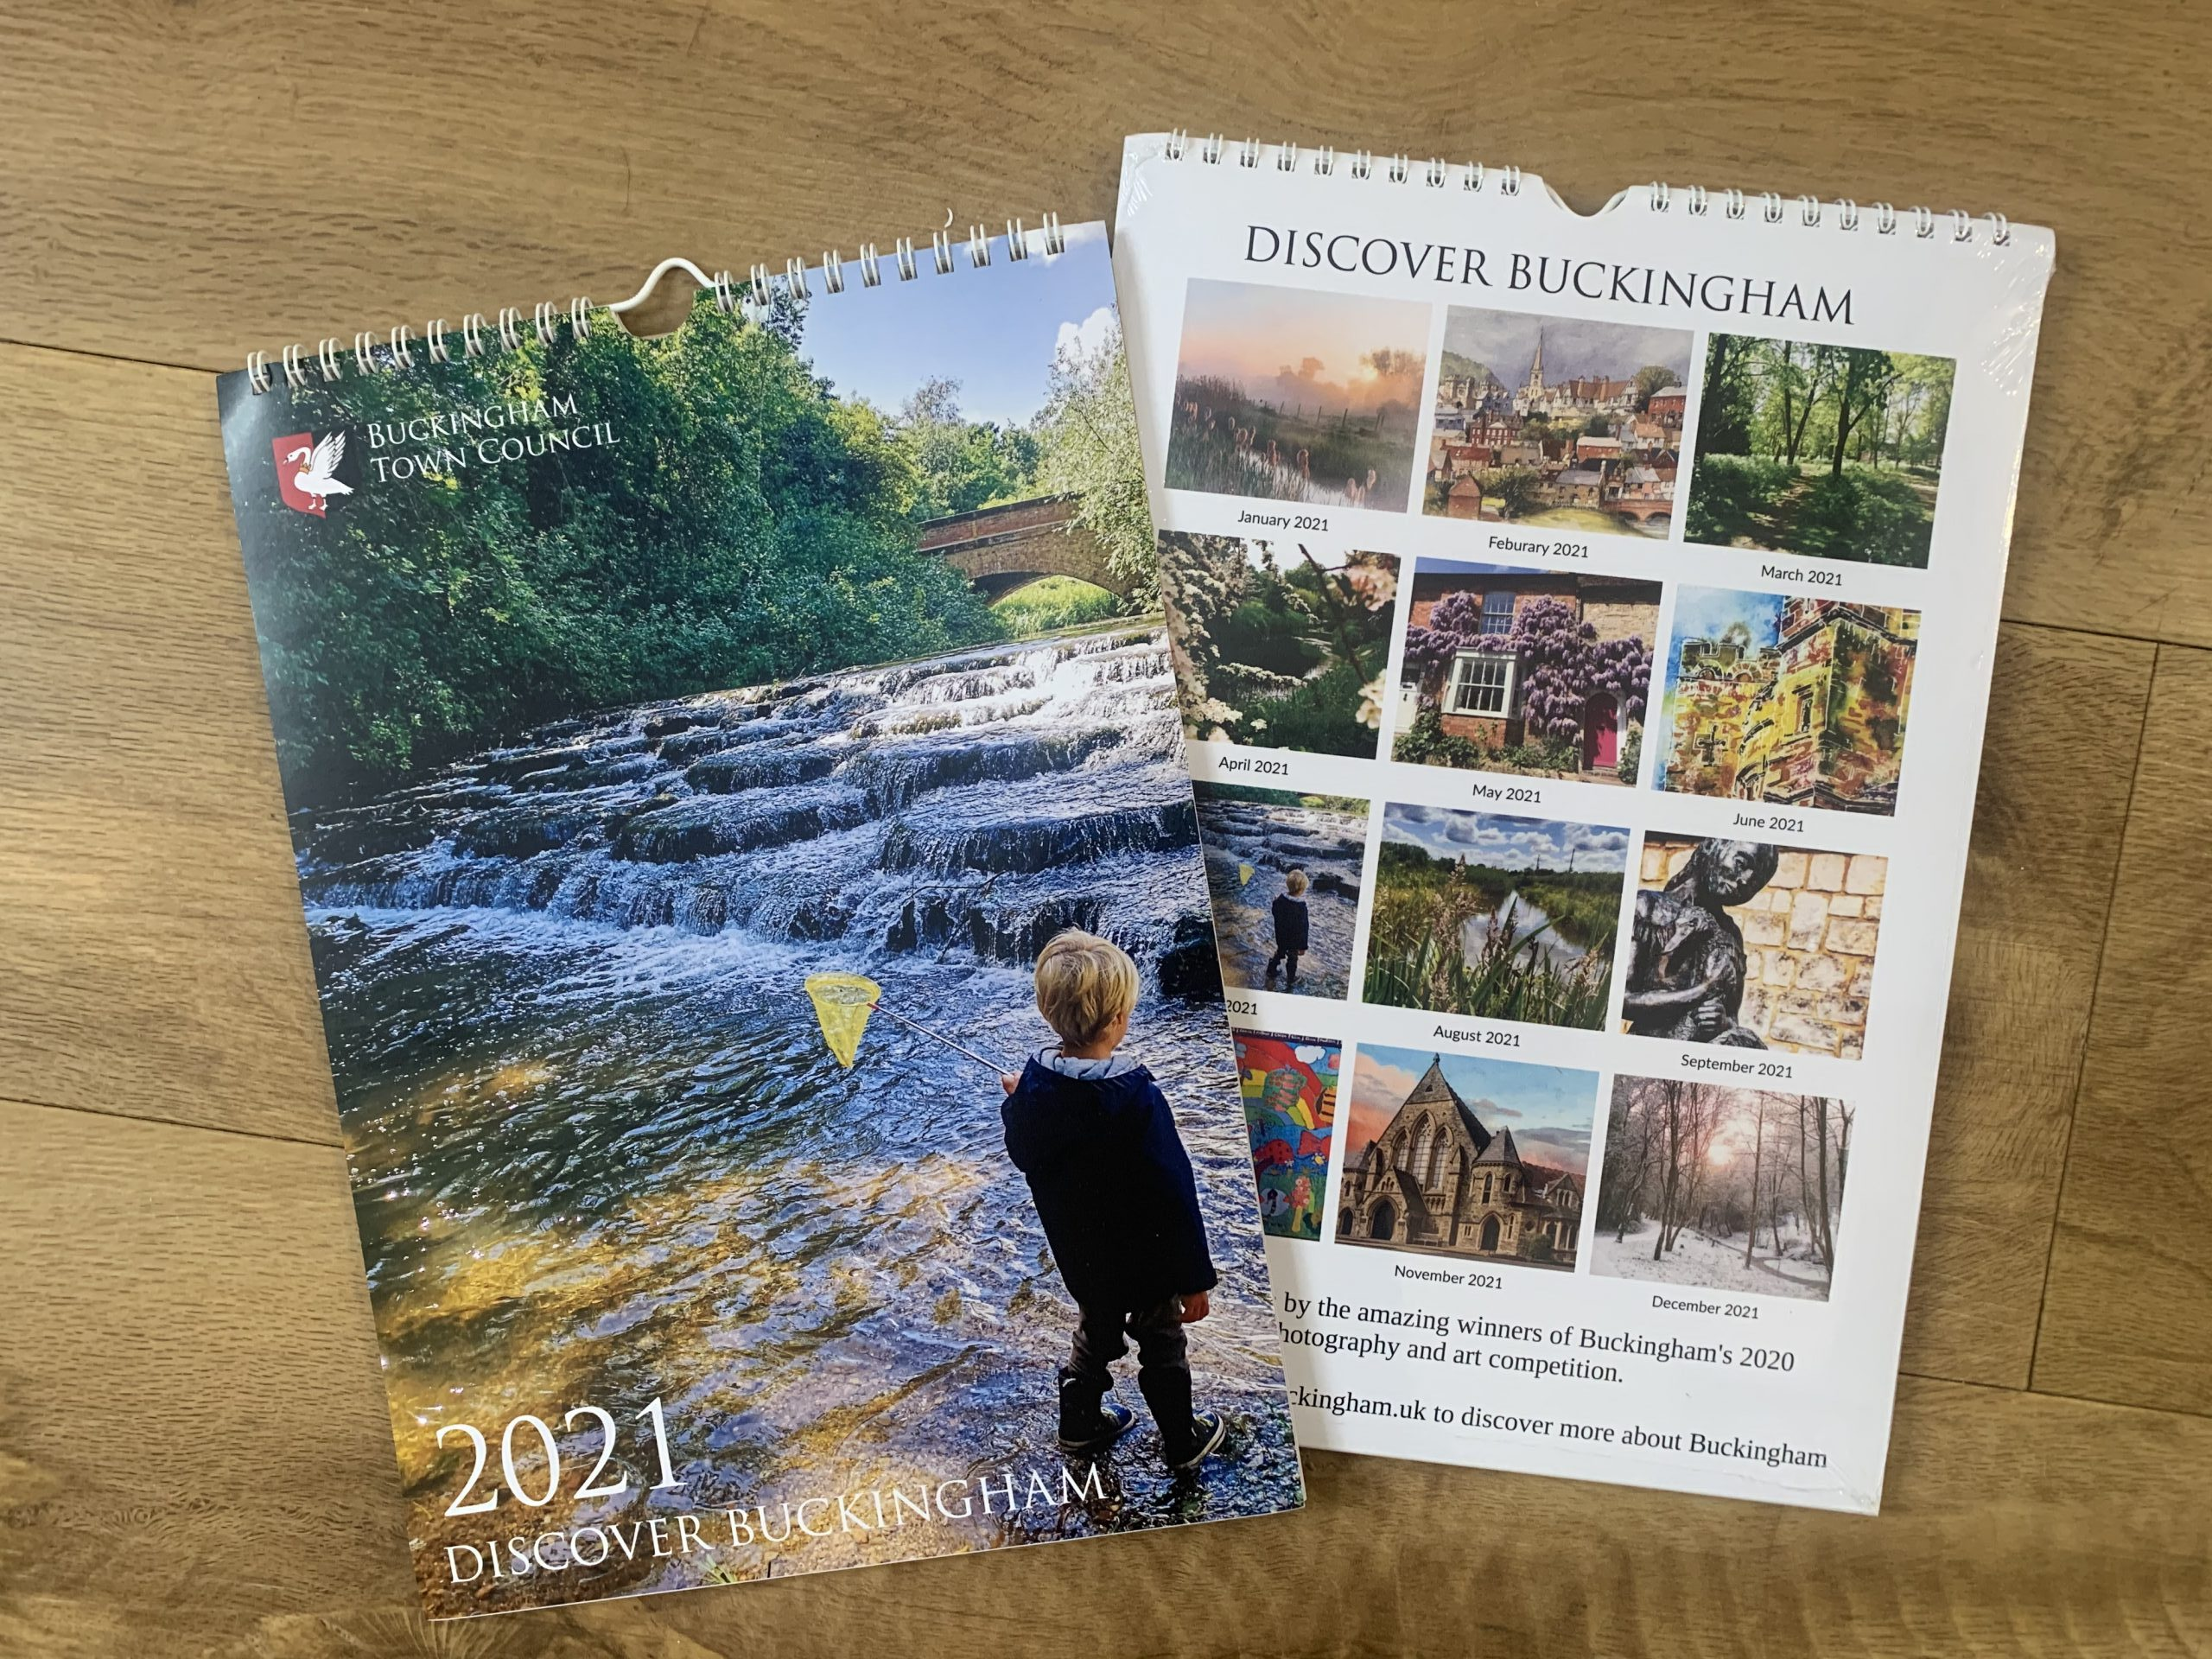 Front and Back covers of the Buckingham 2021 calendar. The front image shows a child with a fishing net standing in the Flosh